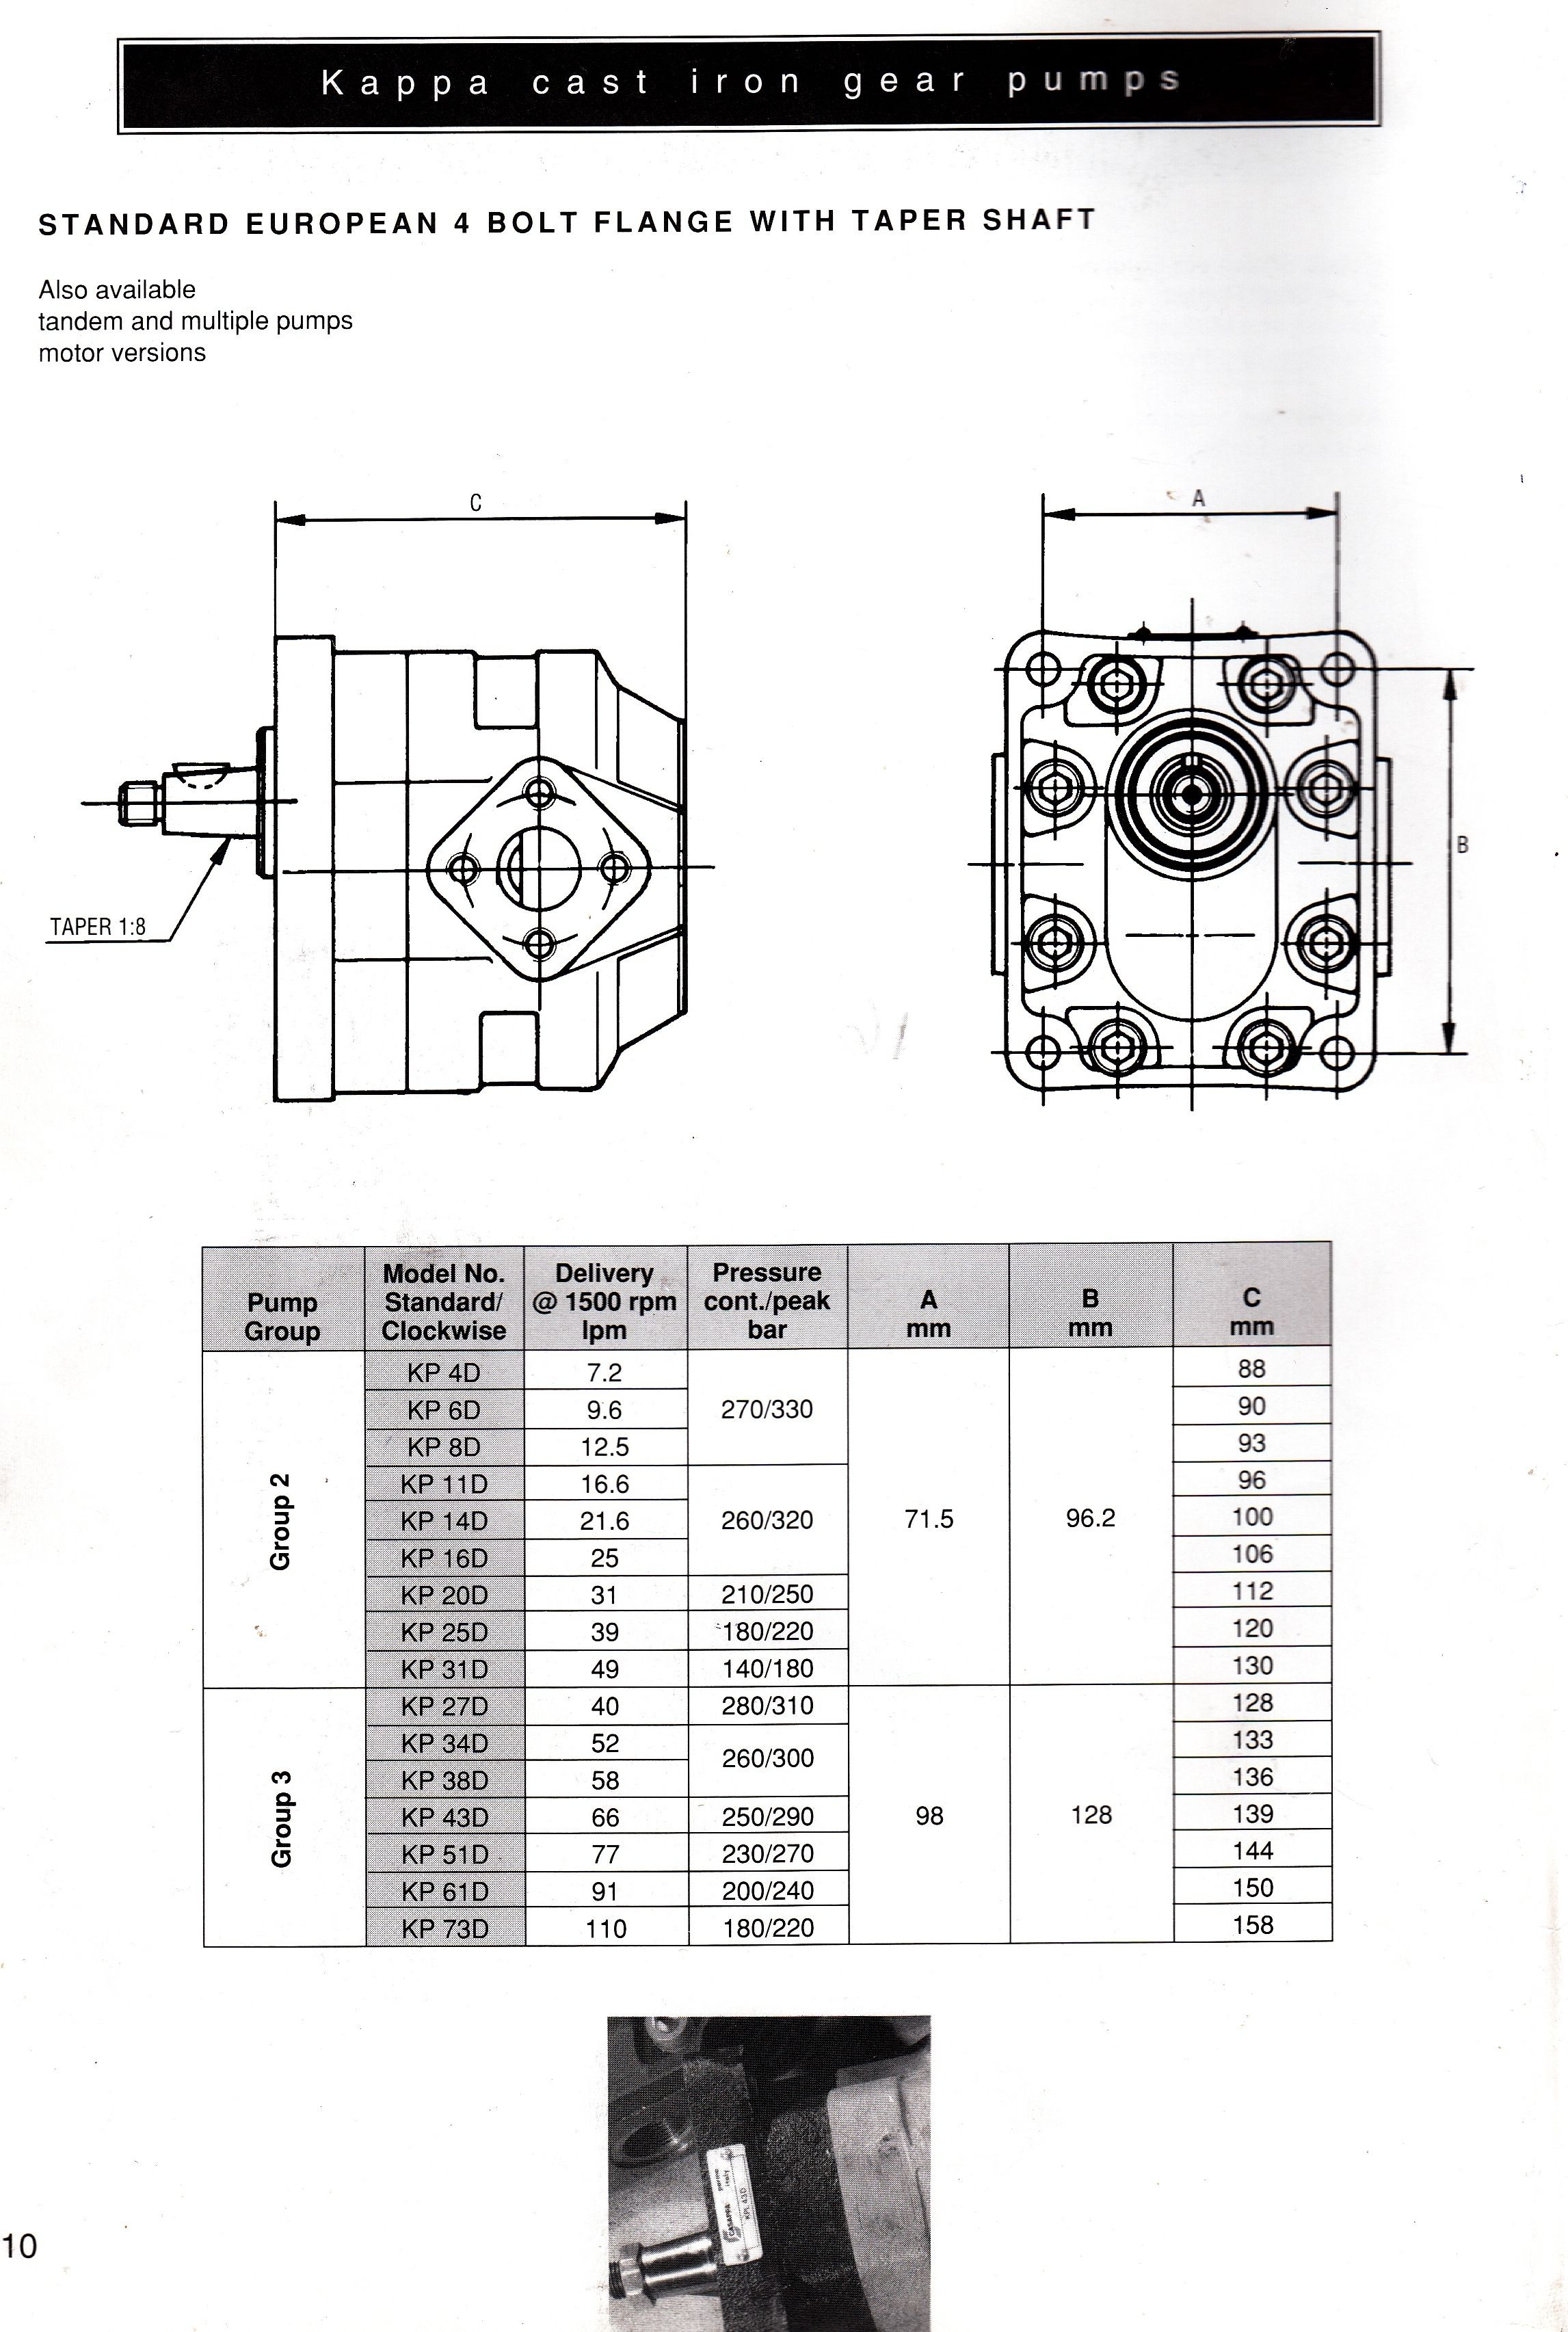 Hydraulic Pump Diagram Monarch Hydraulic Pump Wiring Diagram Wiring Diagram on 2001 volvo s80 brake light wiring diagram